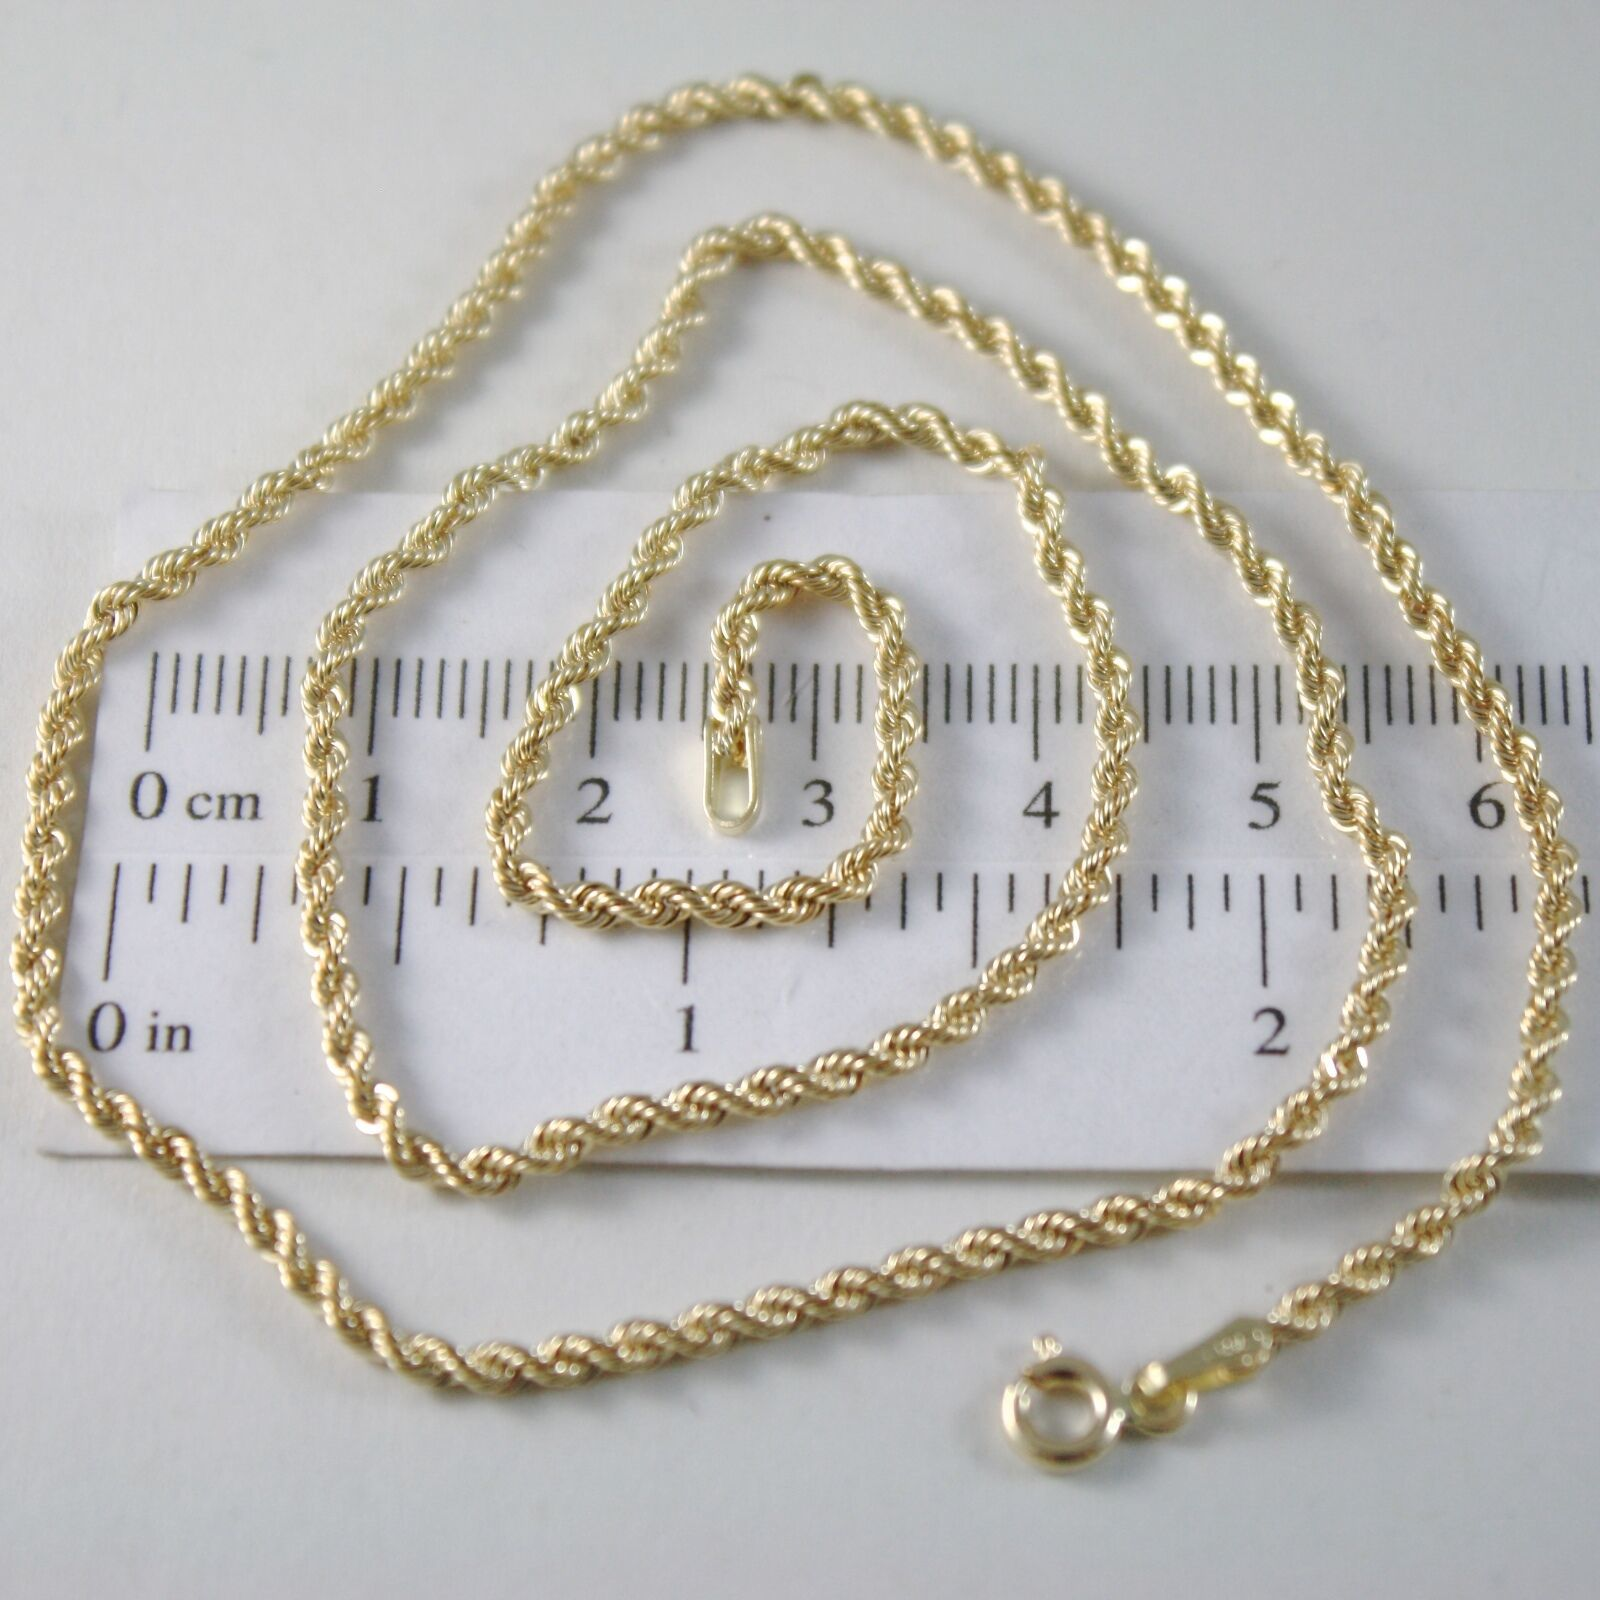 Braided Rope Chain in Yellow 750 18k, 40 45 50 60 cm thickness 2.5 MM